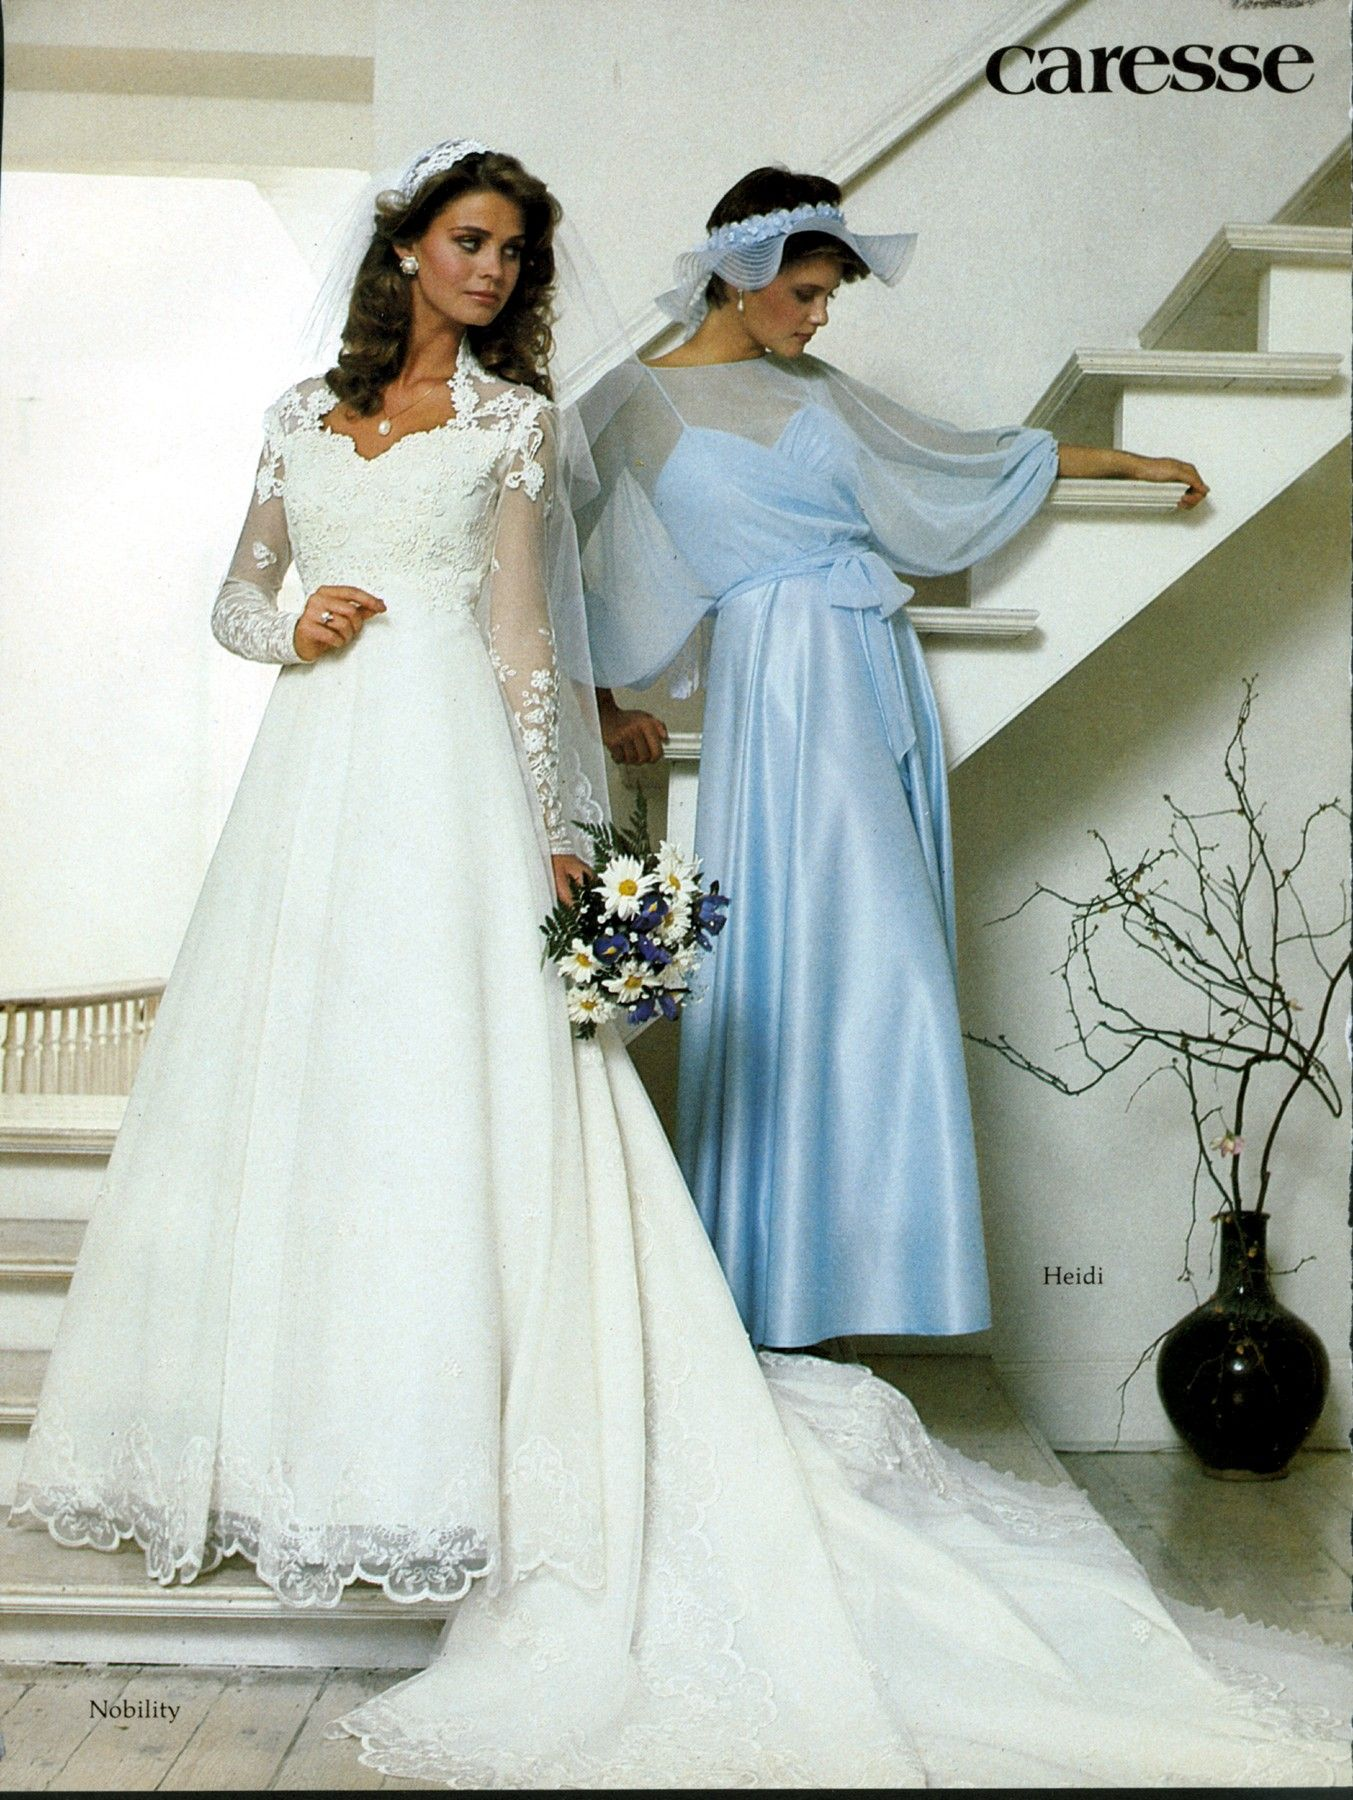 Pin by n loren on 80\'S AND 90\'S BRIDAL WEDDING FASHION | Pinterest ...